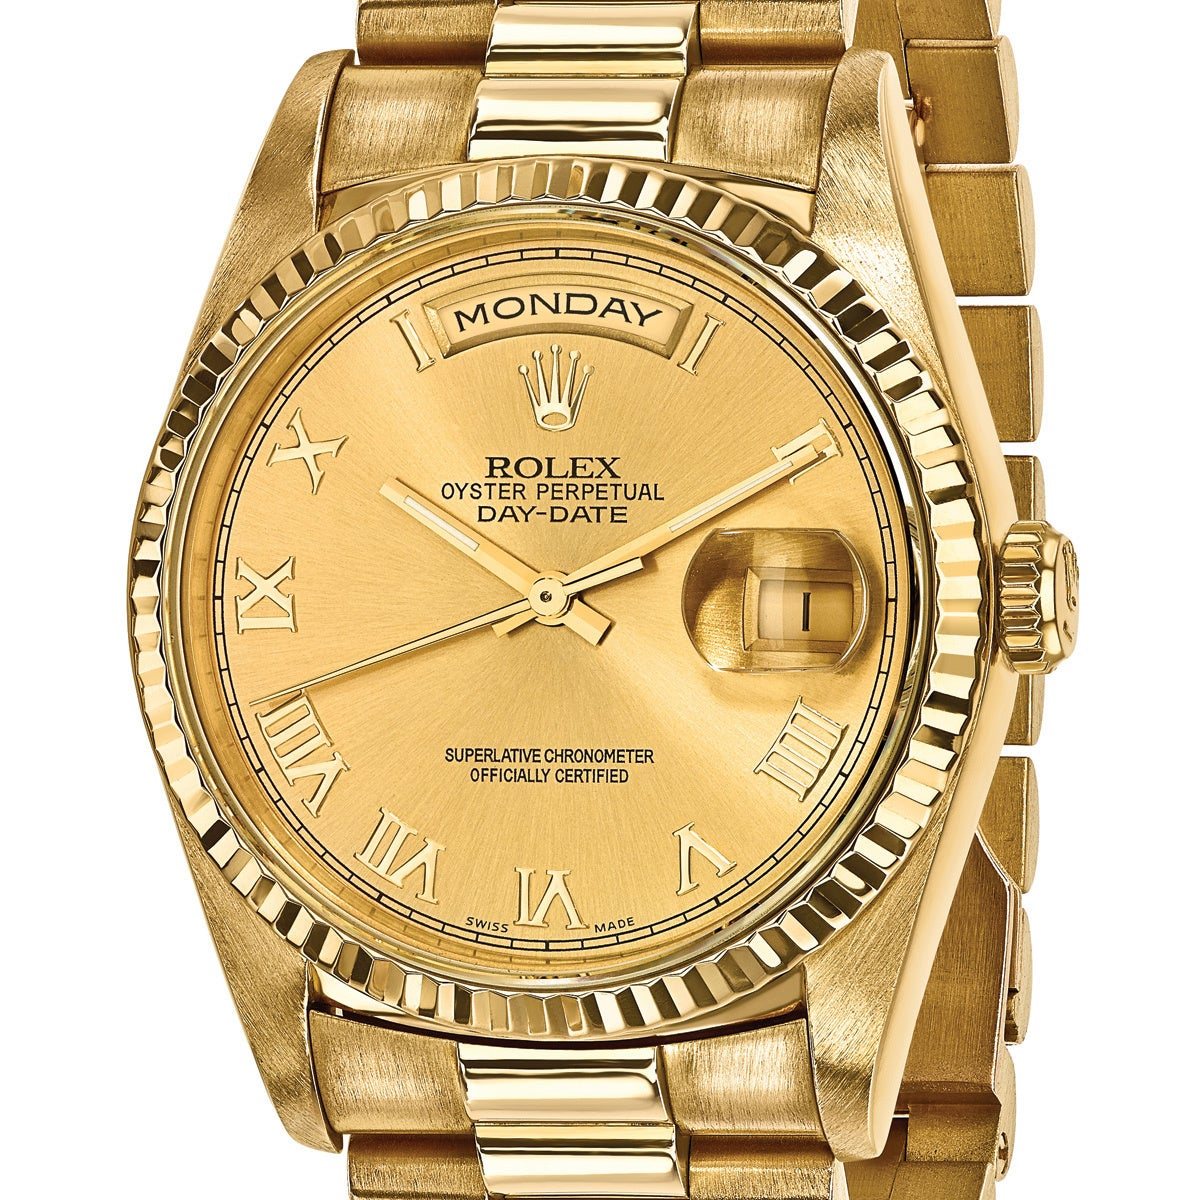 3648b6e0262b3 Quality Pre-Owned Rolex Men s 18 Karat Yellow Gold Day-Date Presidential  Watch